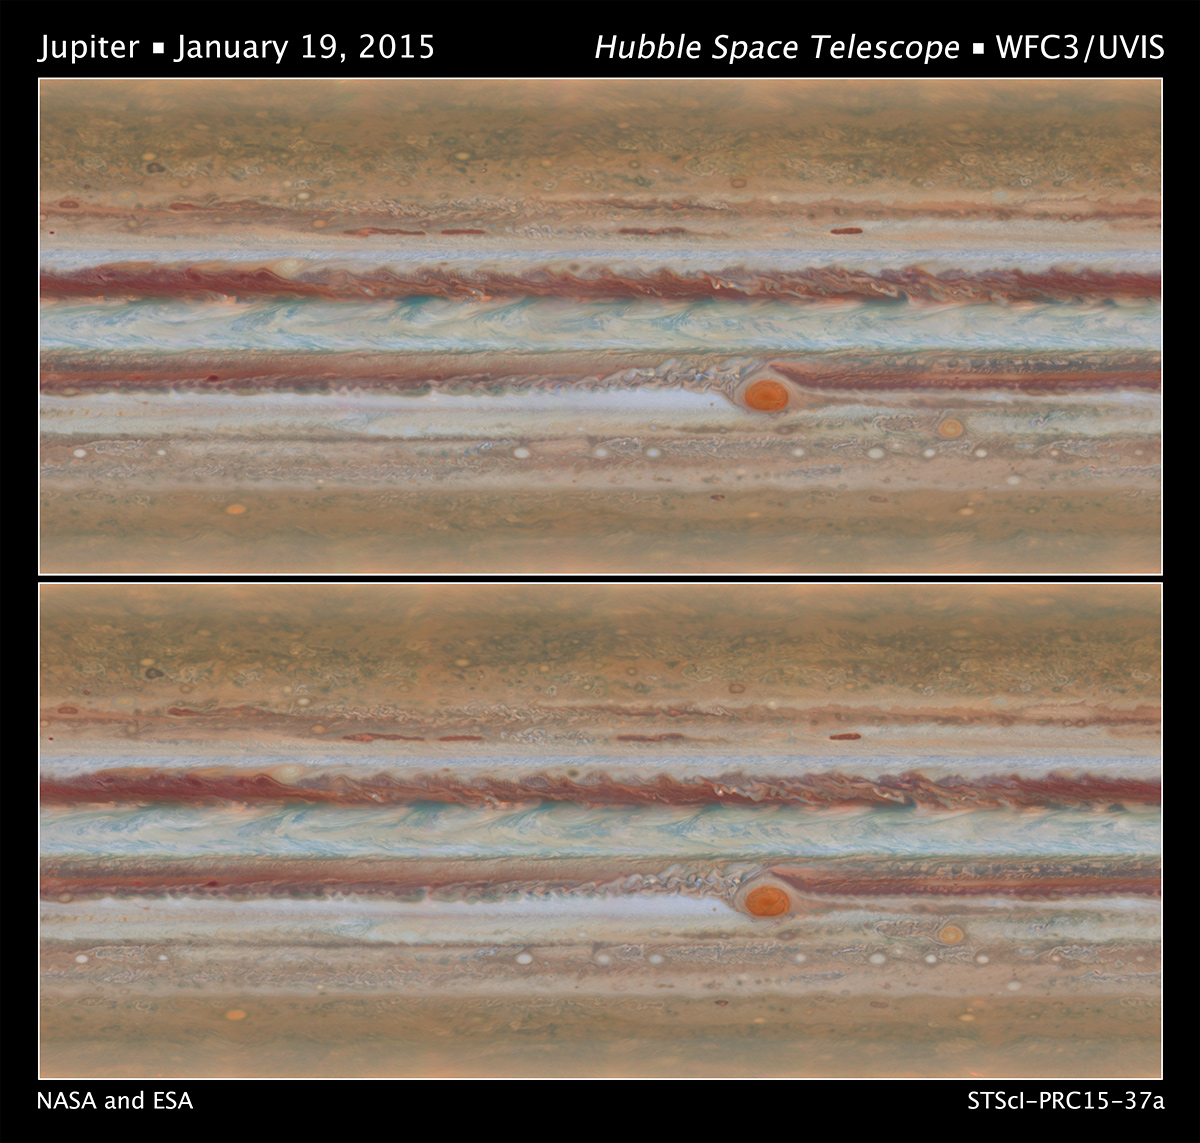 Scientists have produced new maps of Jupiter using the Wide Field Camera 3 on NASA's Hubble Space Telescope. Data for the two maps shown here were taken during Hubble Outer Planet Atmospheres Legacy program observations of Jupiter on Jan. 19, 2015, from 2:00 UT to 12:30 UT (upper panel) and from 15:00 UT to 23:40 UT (bottom panel). The movement of the clouds can be seen when comparing the two maps. Image Credit: NASA/ESA/Goddard/UCBerkeley/JPL-Caltech/STScI